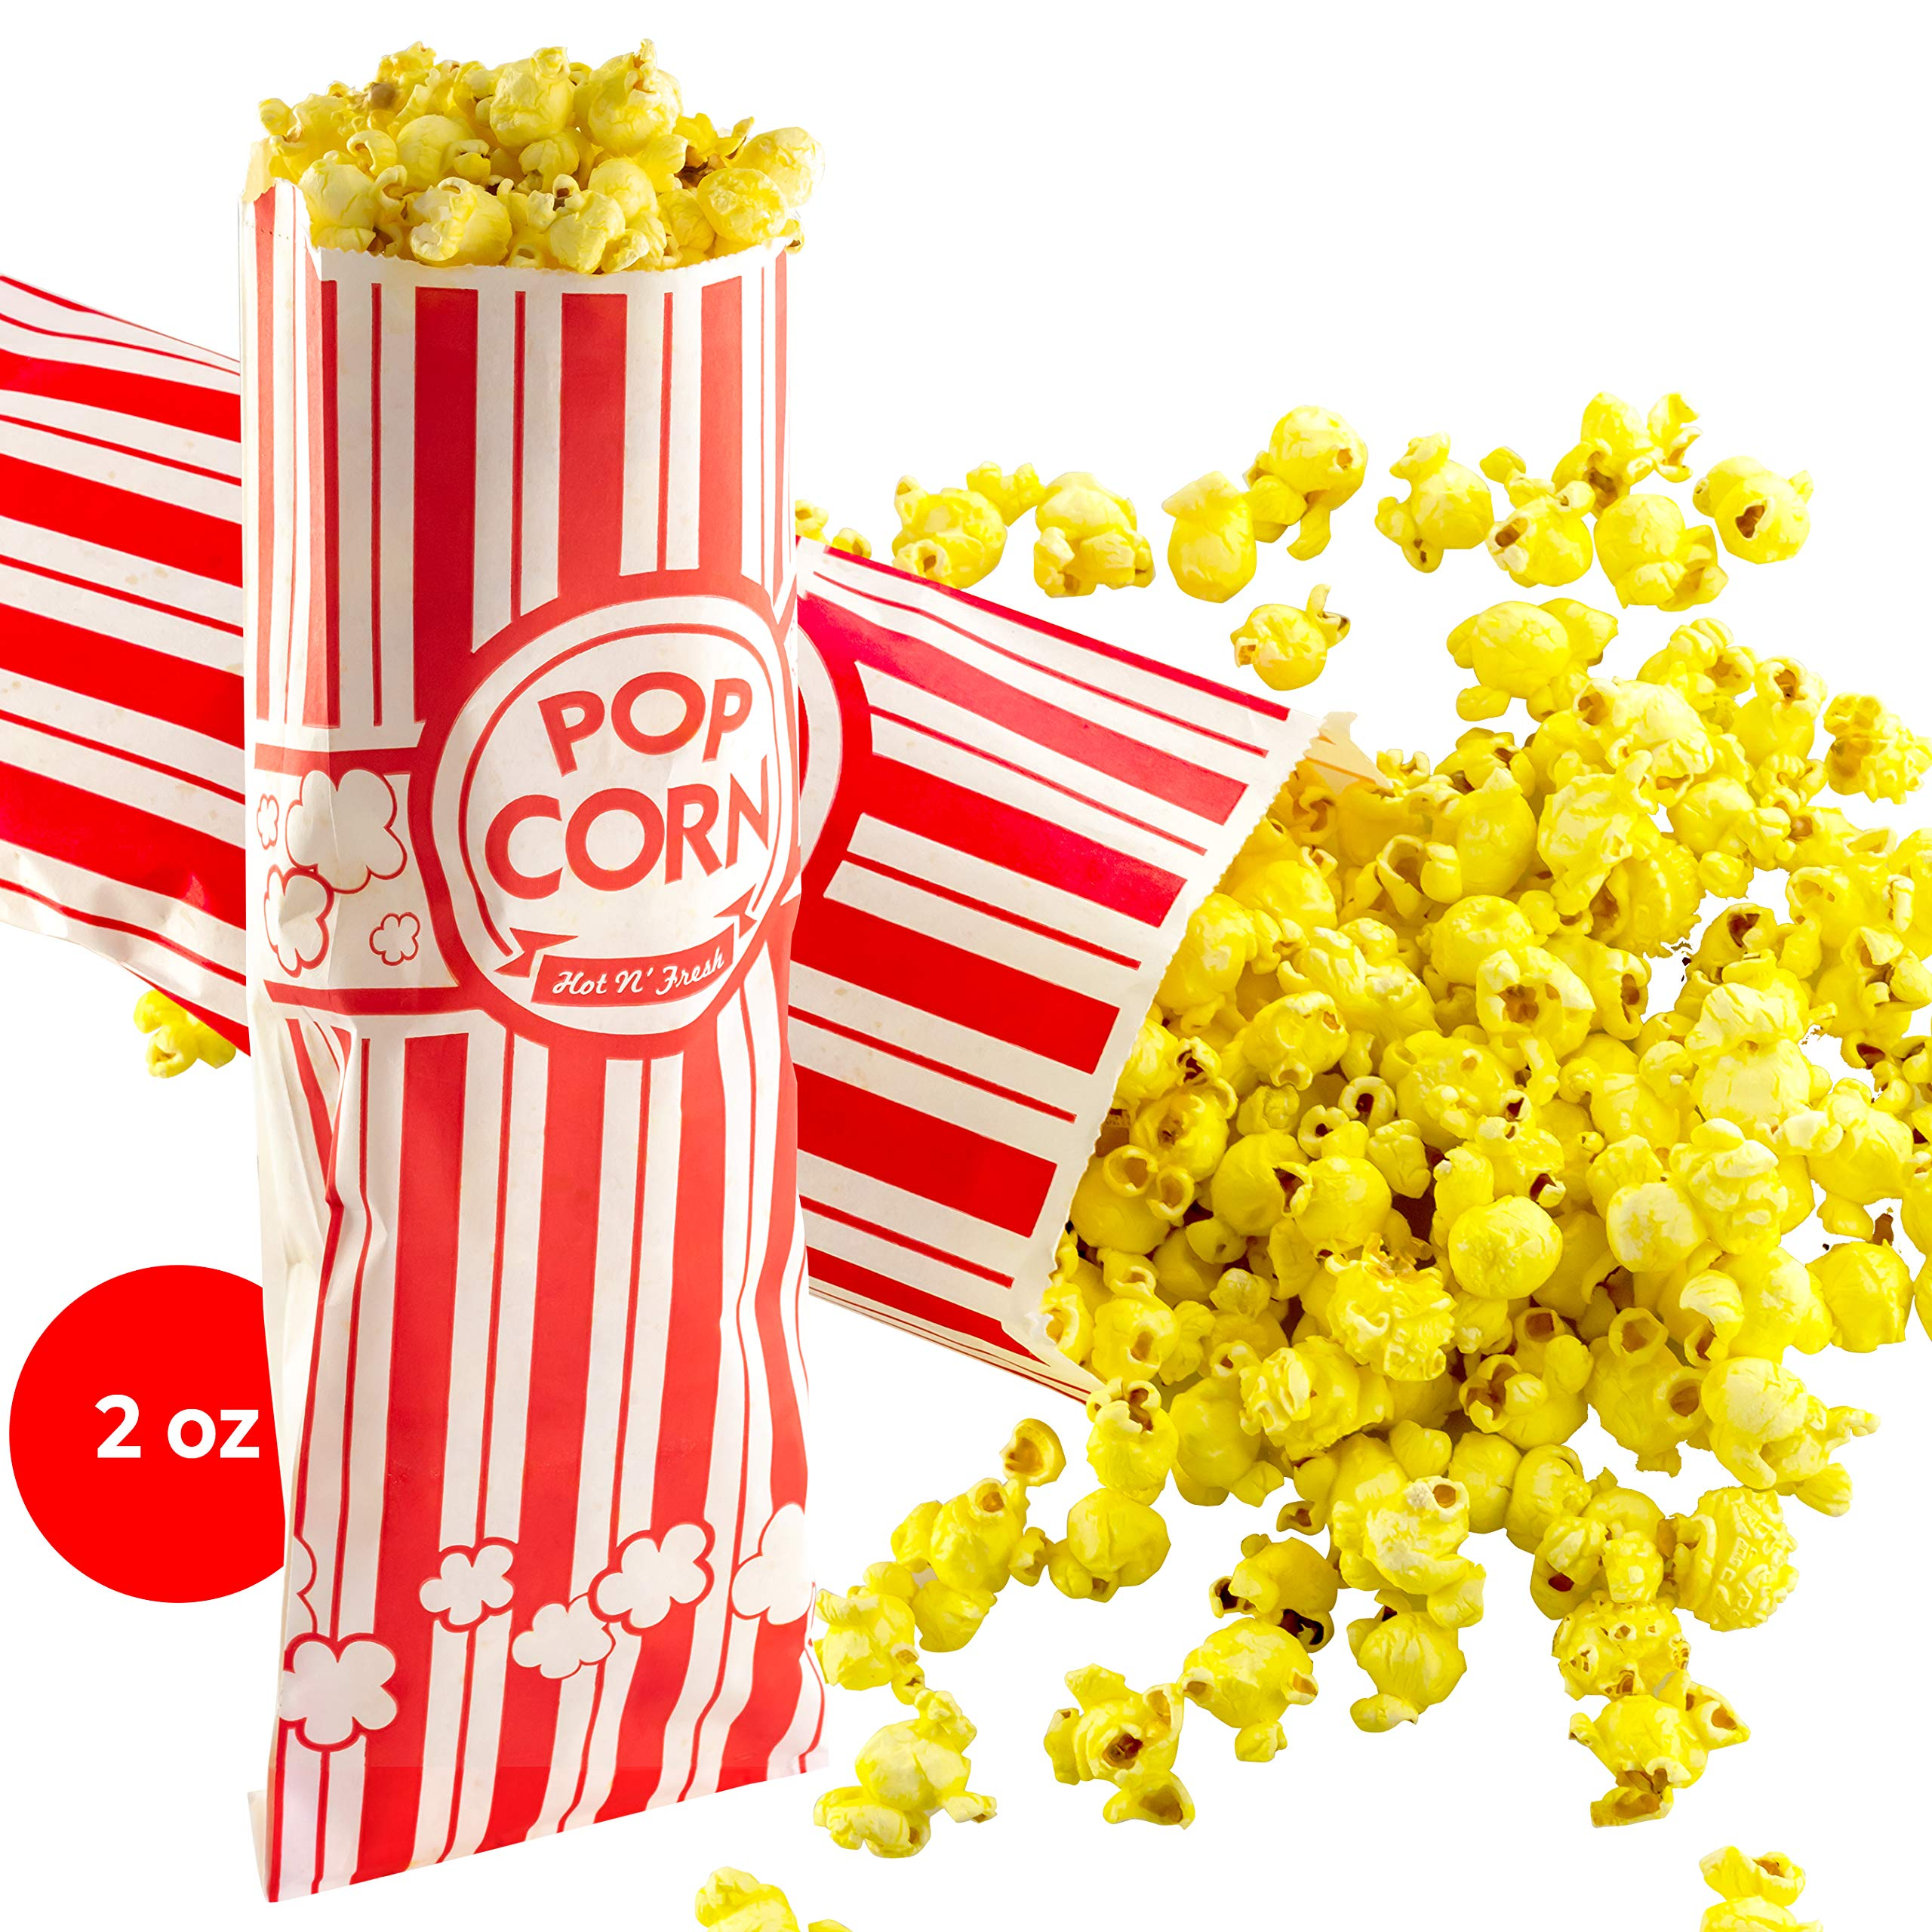 Popcorn Bags 1000 Pack. Coated for Leak/Tear Resistance. Single Serving 2oz Paper Sleeves in Nostalgic Red/White Design. Great Movie Theme Party Supplies or Old Fashioned Carnivals & Fundraisers!